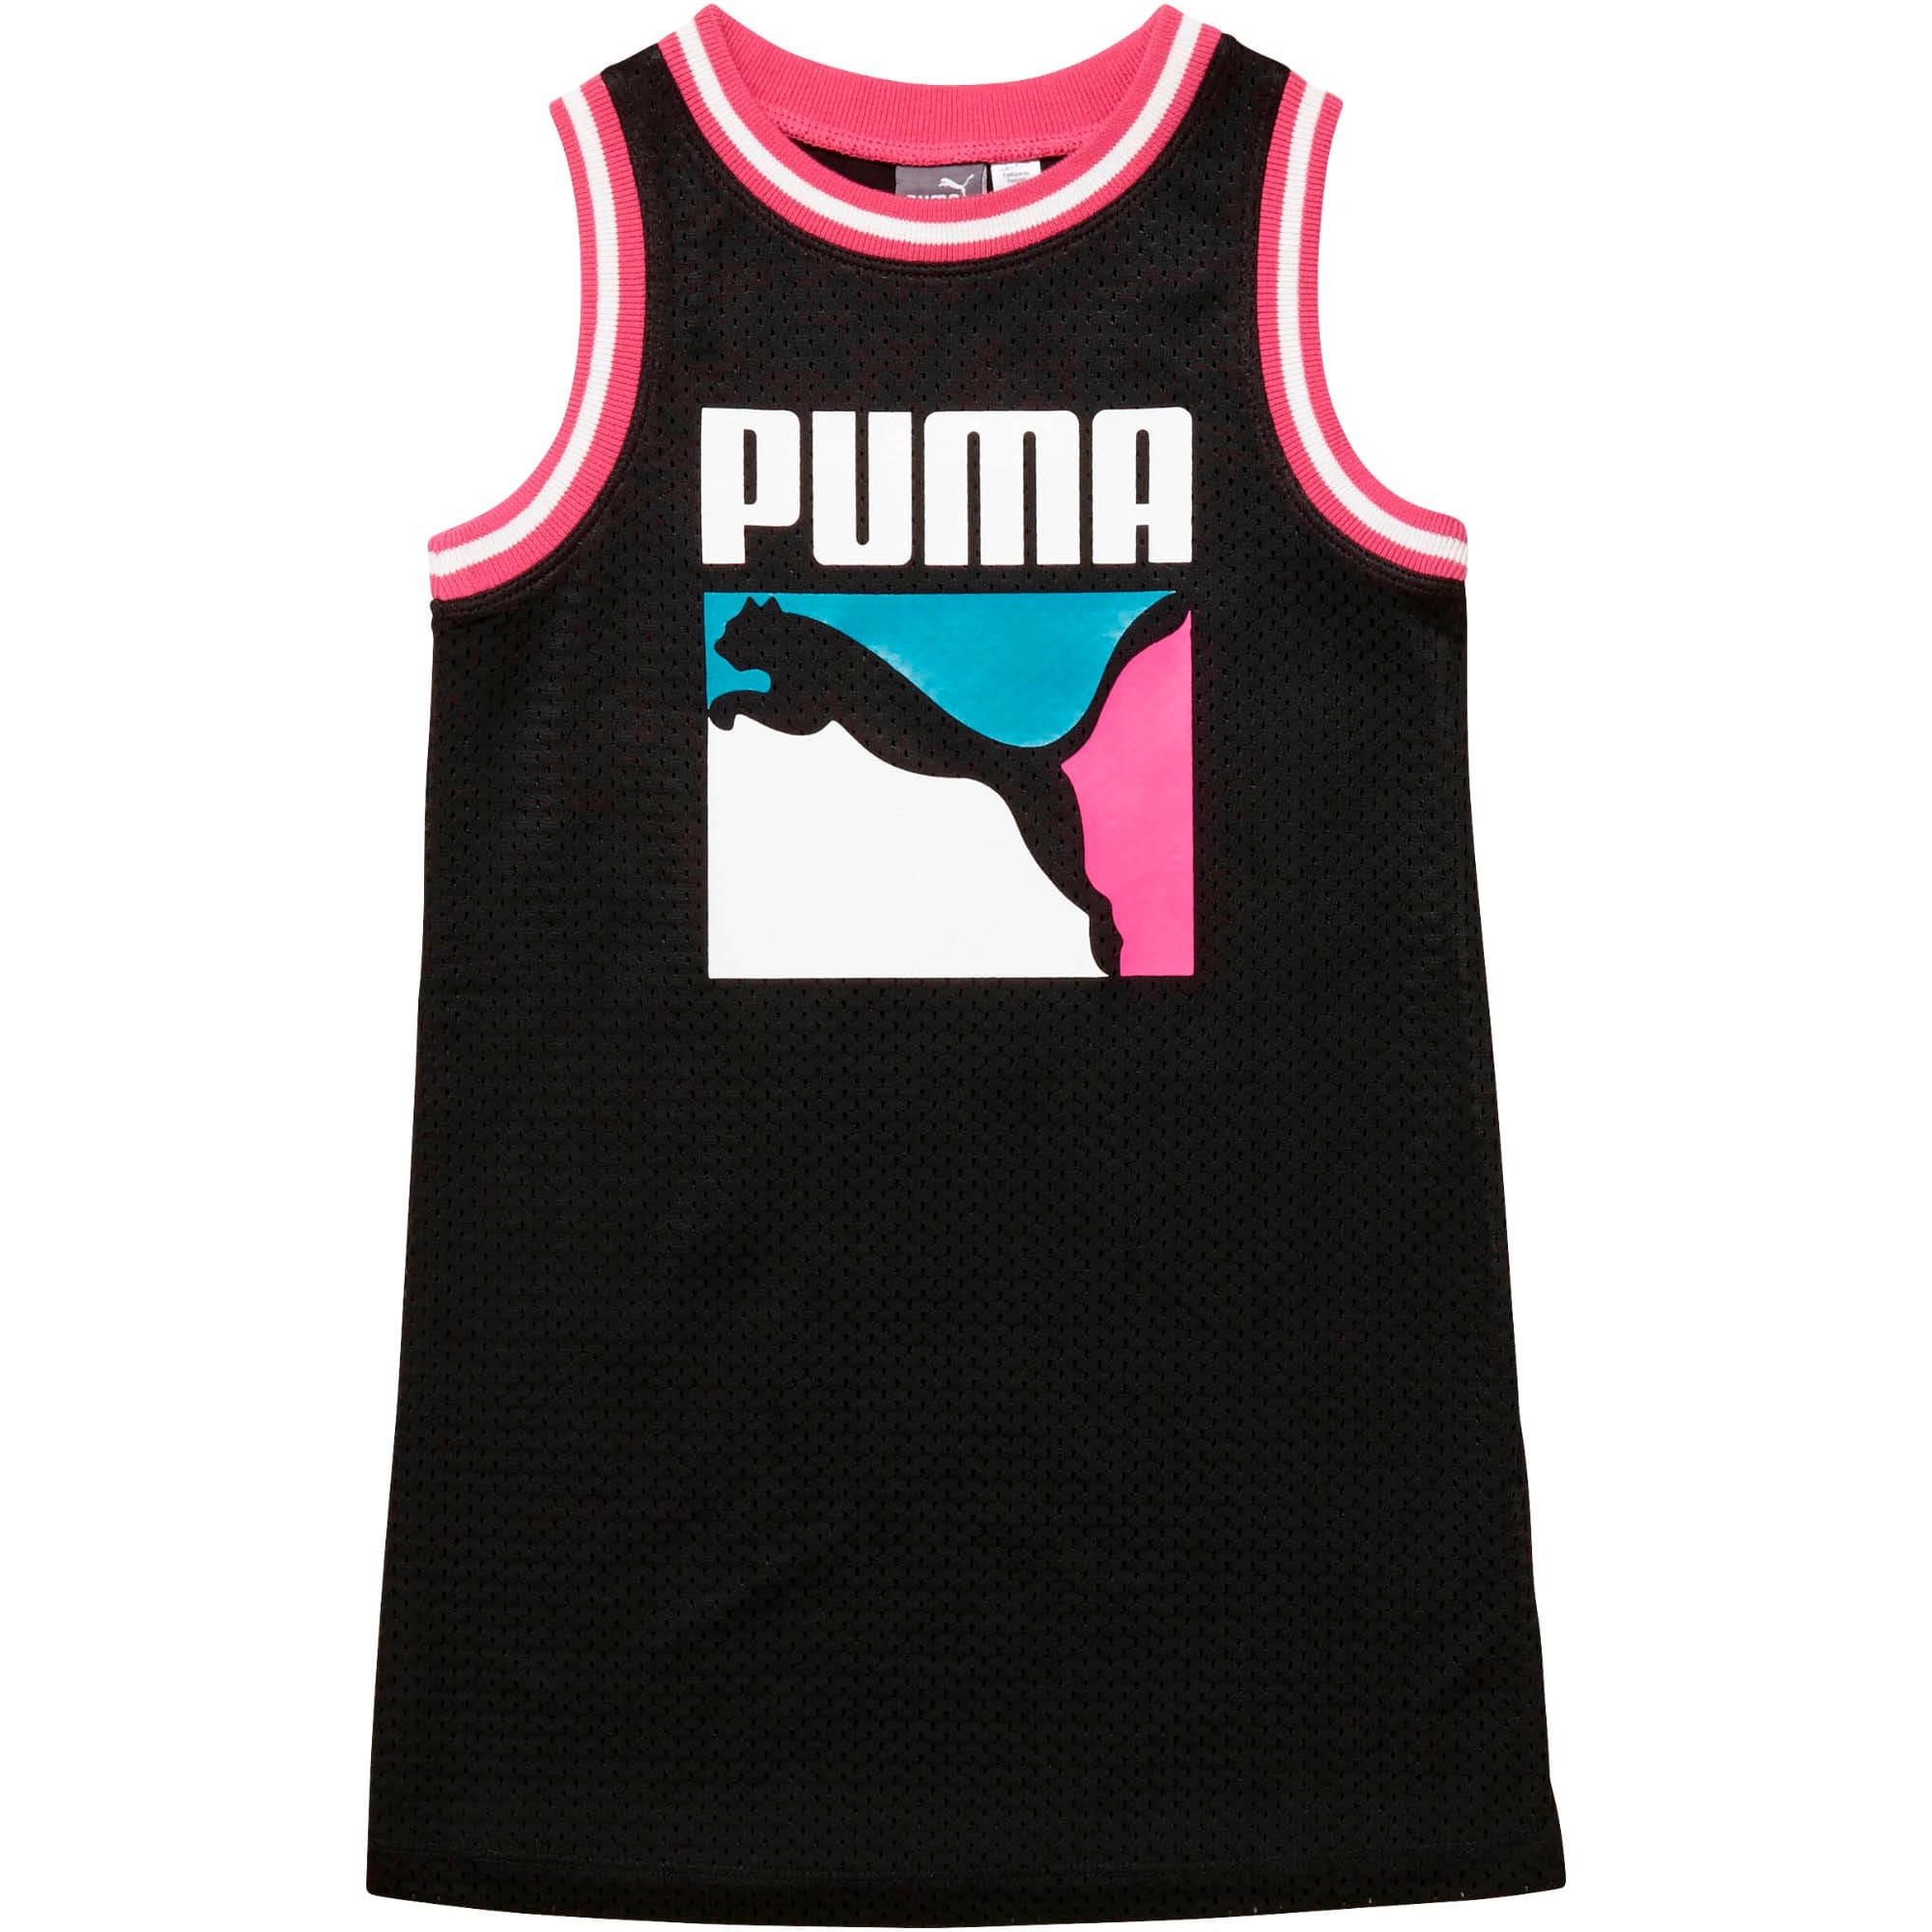 Thumbnail 1 of Little Kids' Cotton Jersey Mesh Dress, PUMA BLACK, medium